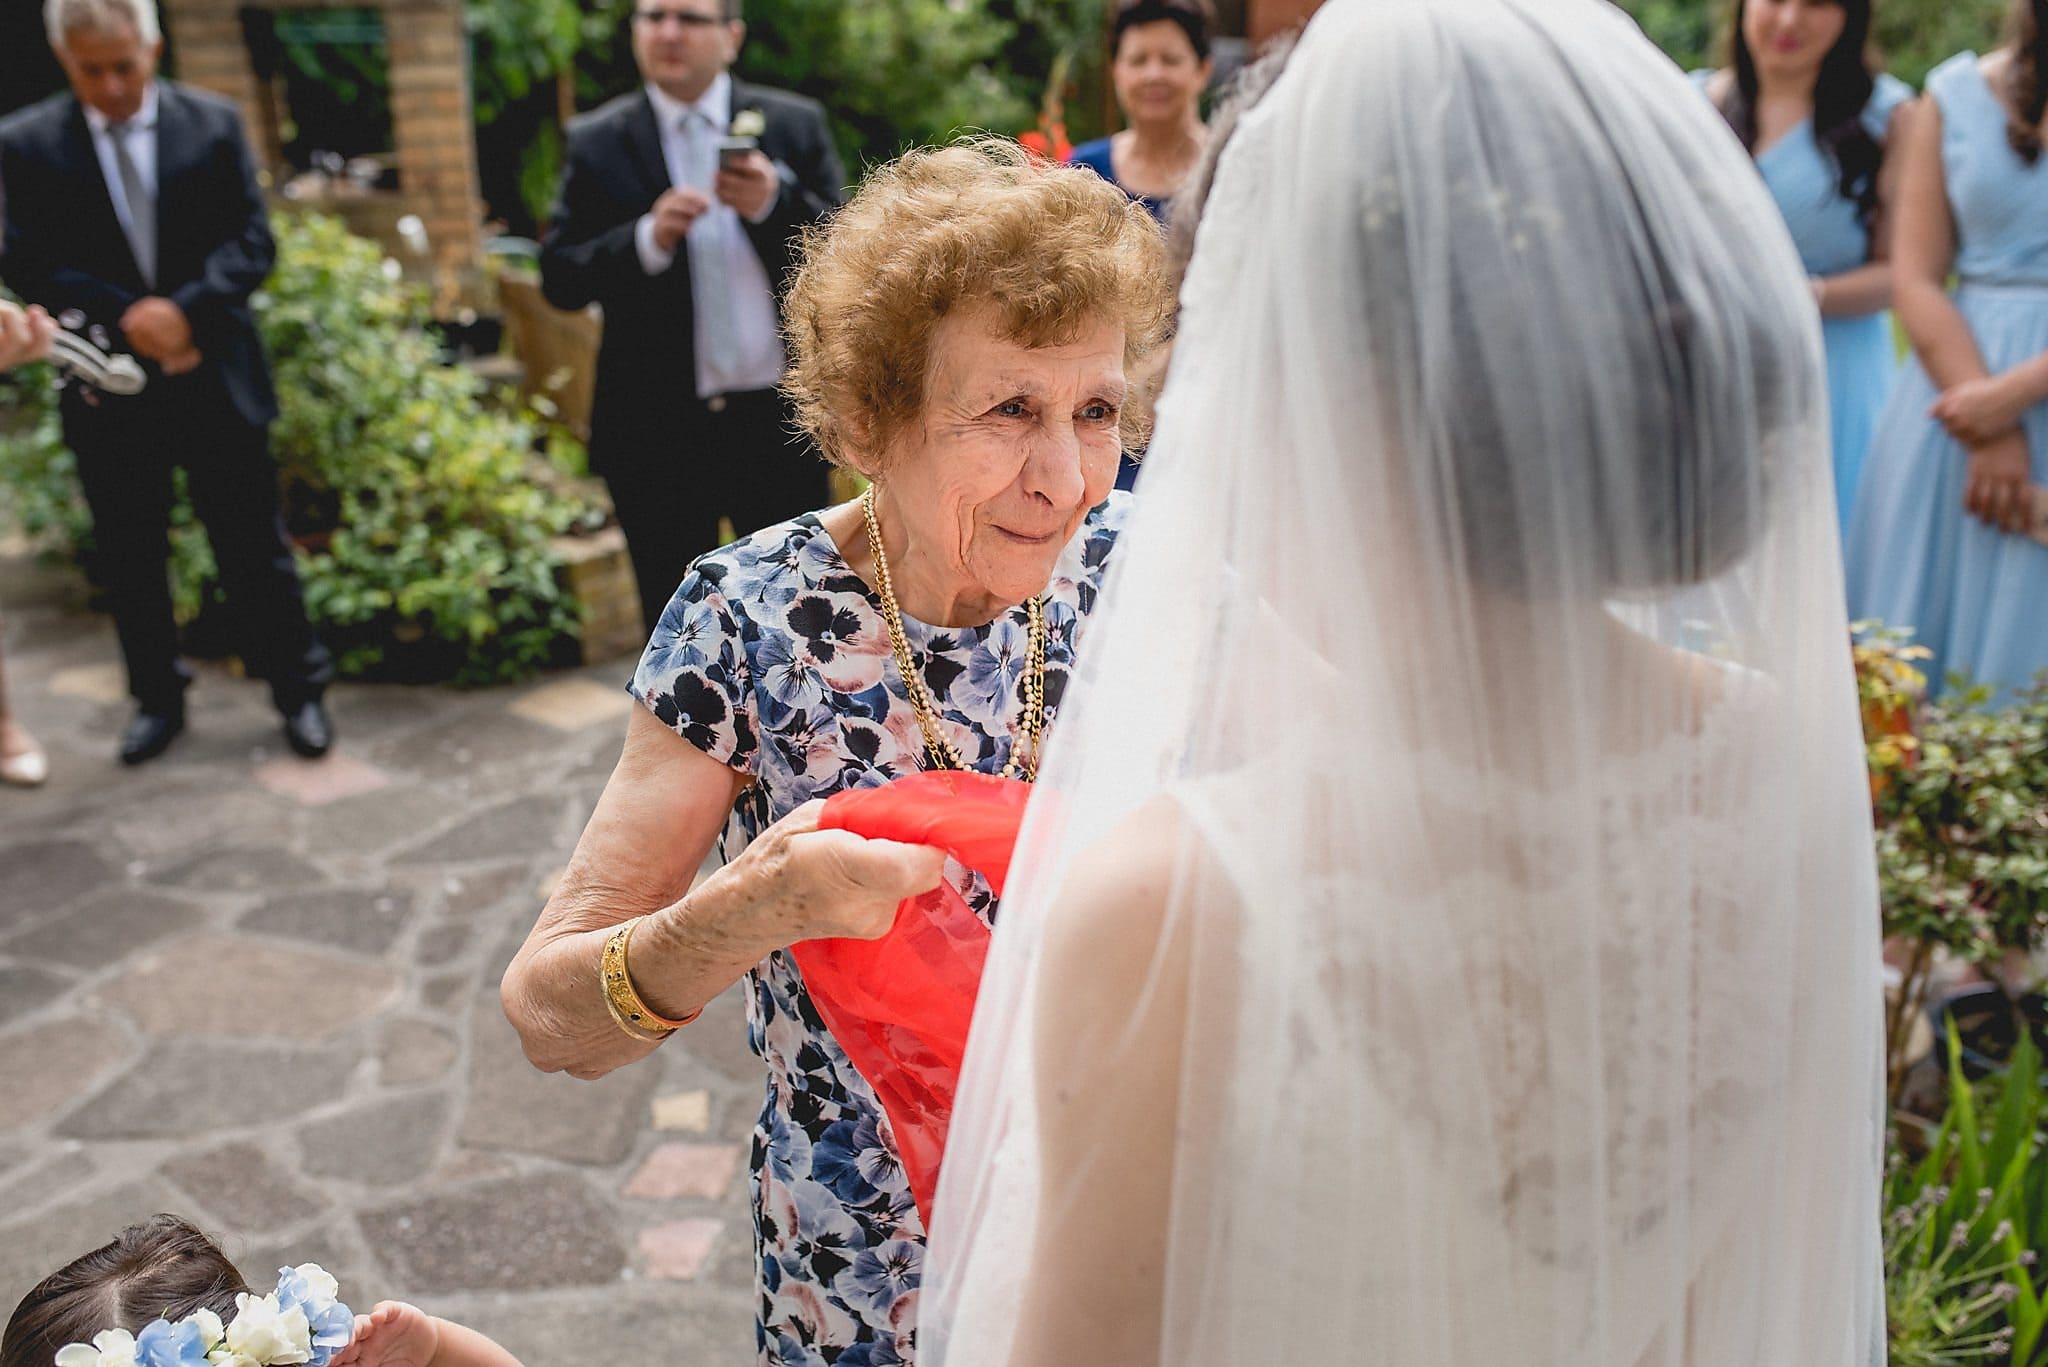 Grandmother wrapping red scarf around the bride in a Greek Wedding blessing